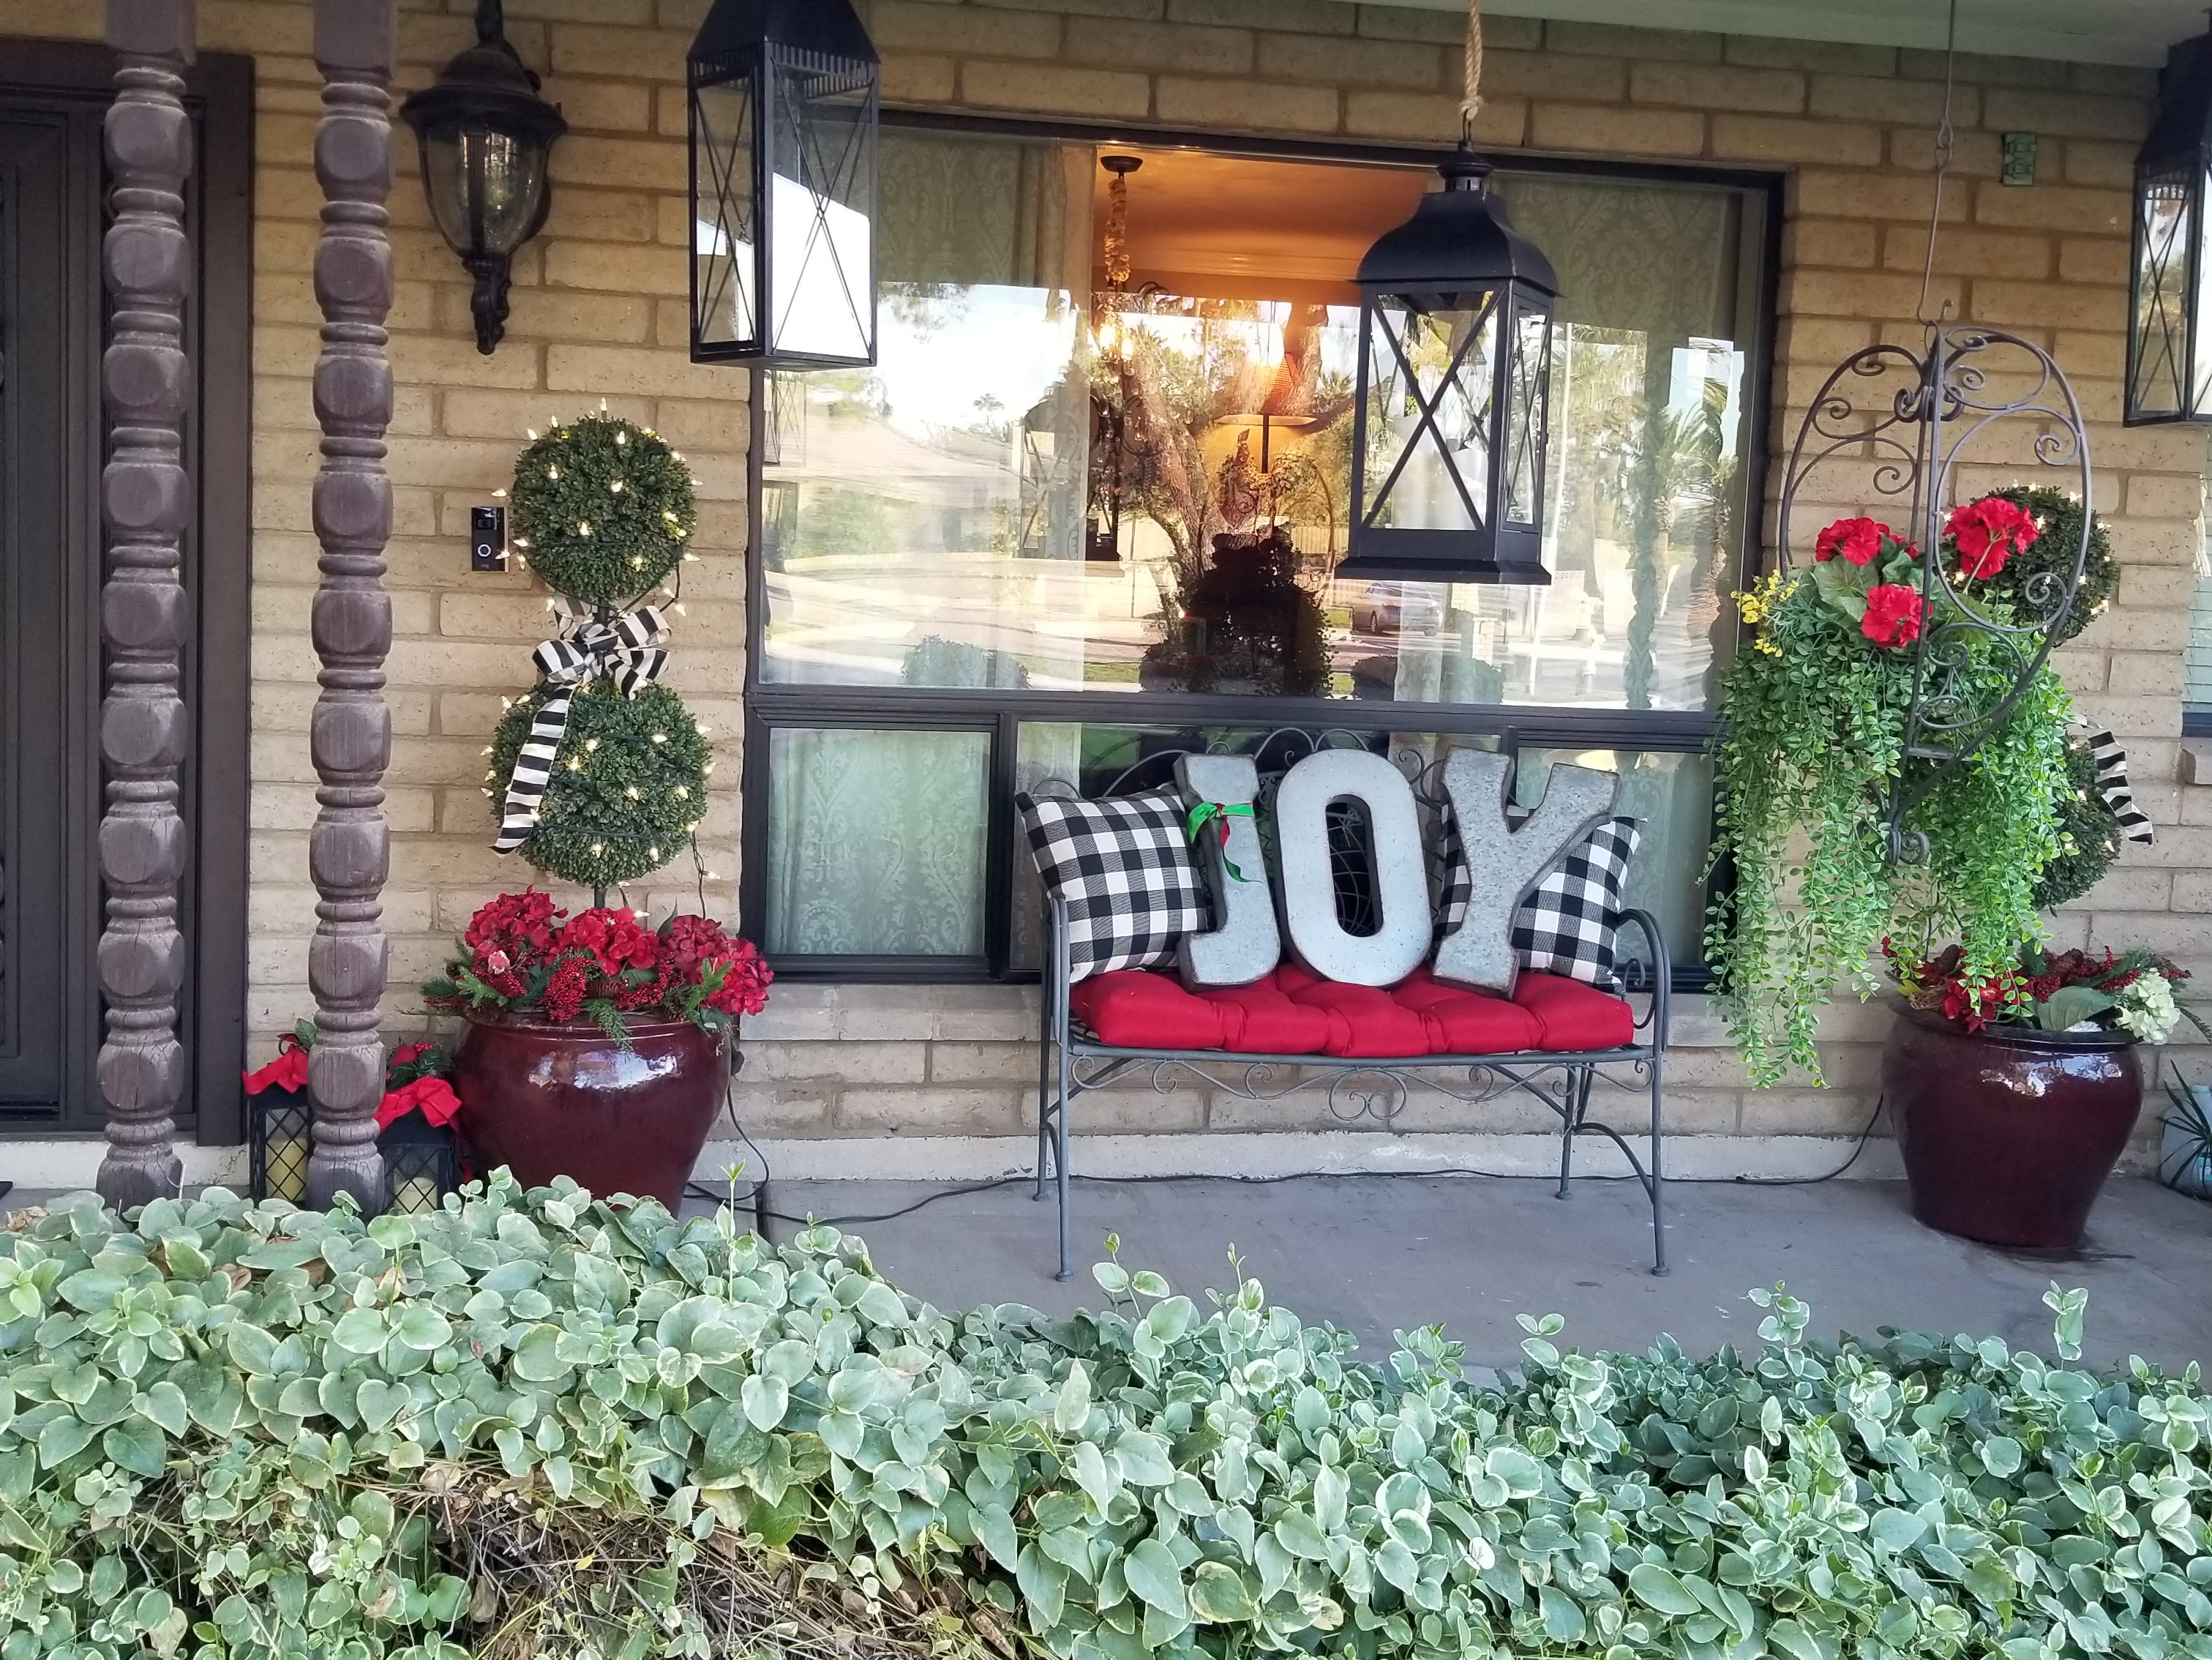 Leaving no stone unturned for the holidays, the Lees' front porch is dressed to the nines. An oversize stuffed moose in his Christmas glad rags, an iron bench announcing JOY amid black and white checkered pillows, and a collections of lanterns greet visitors to the warmth of the Lees' hospitality.